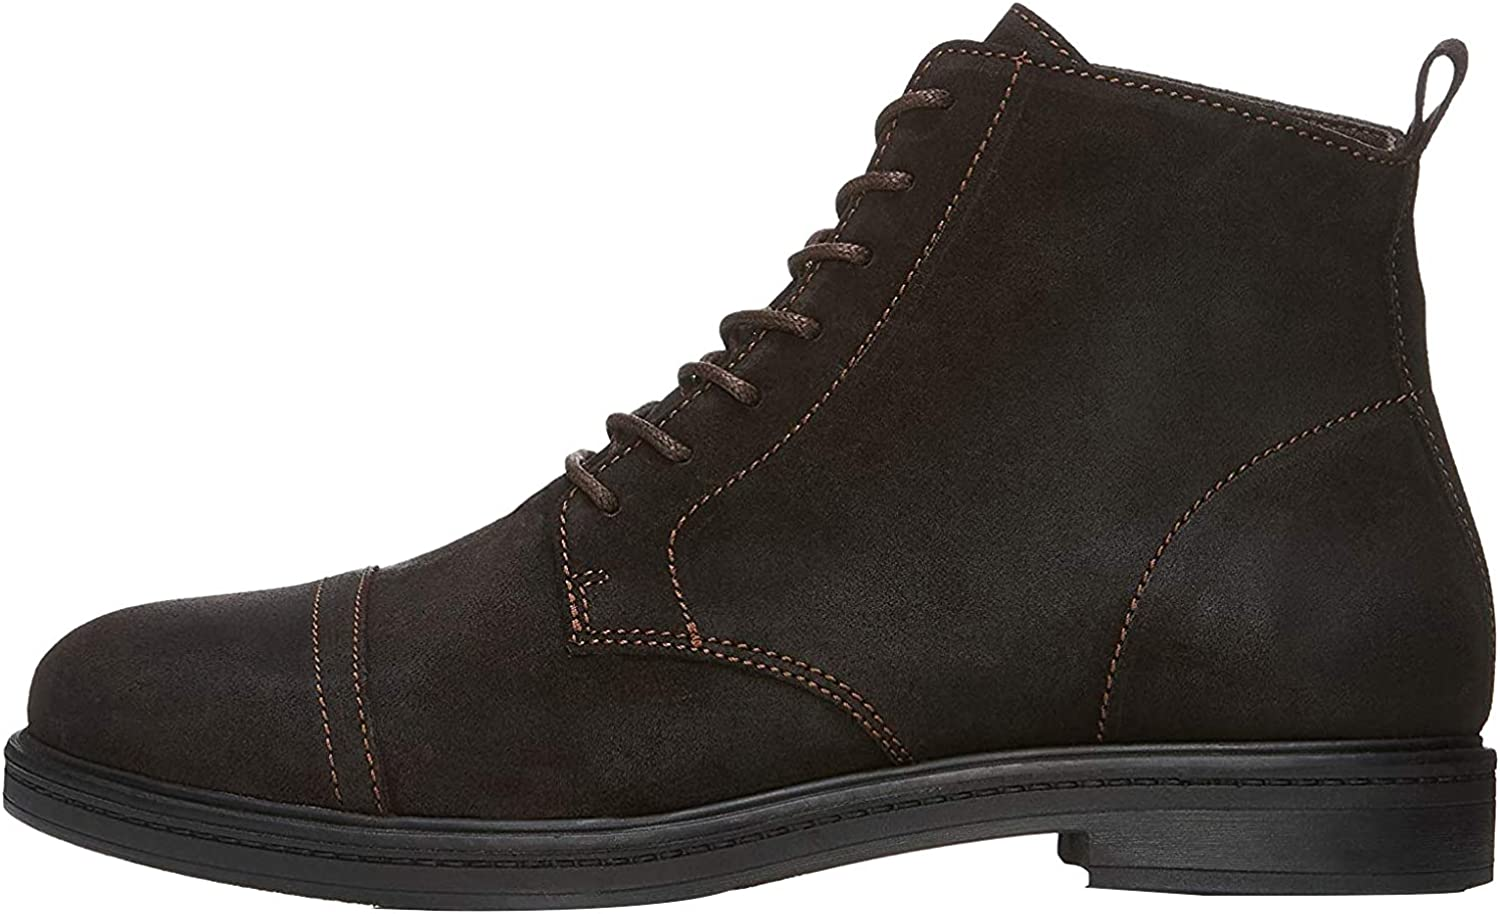 find. overseas Men's Classic Leather Lace Up Oiled Classic Suede Boot